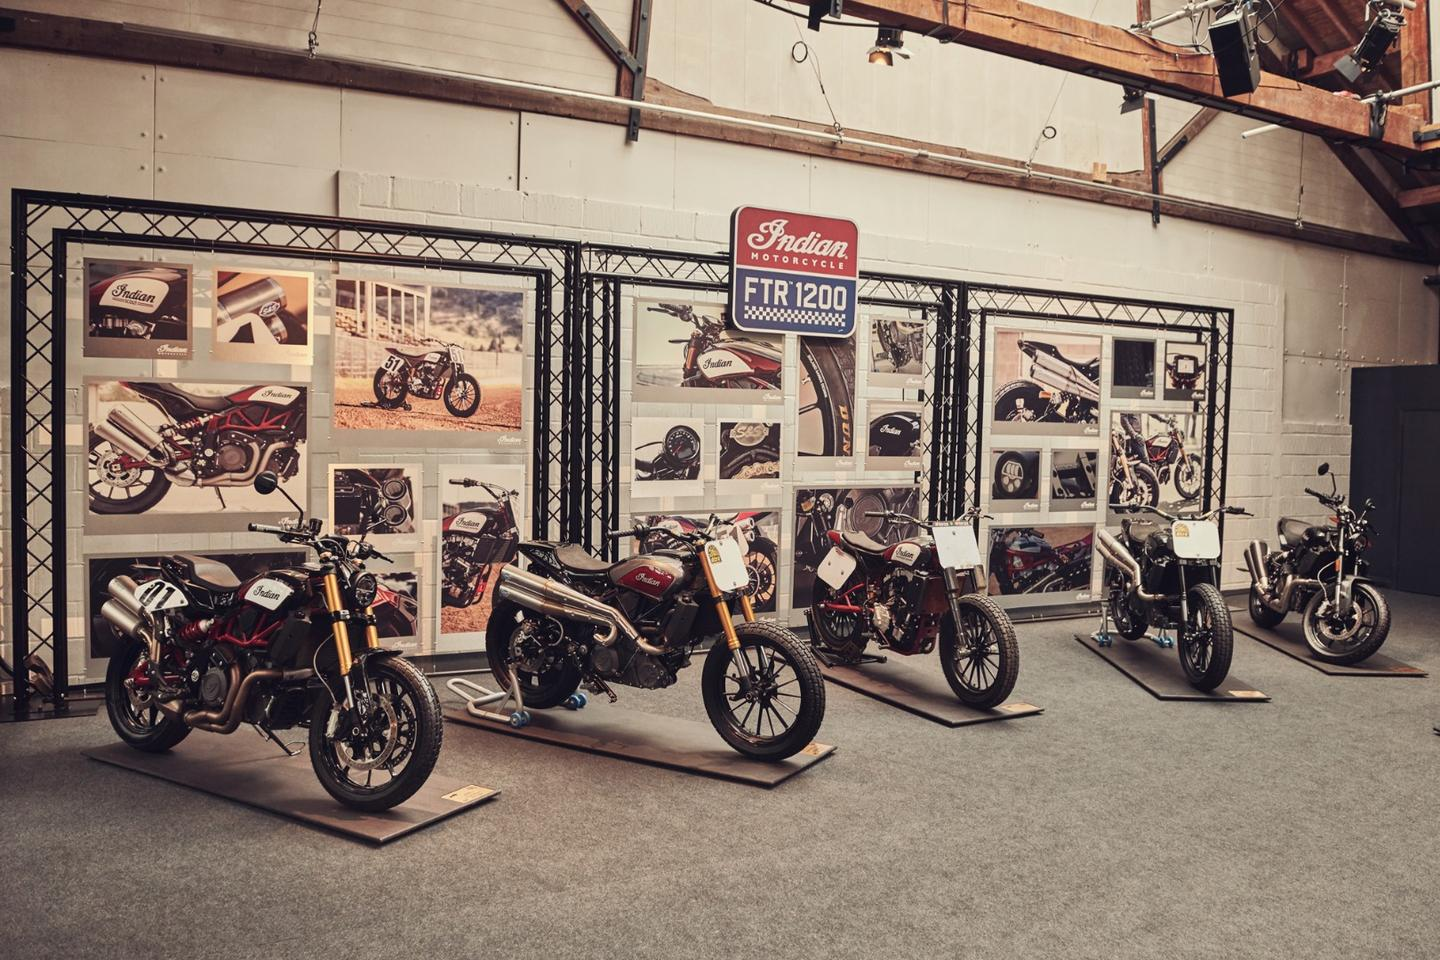 Left: stock. Second from left: Hooligan style. Third from left: an actual FTR750 flat track race bike